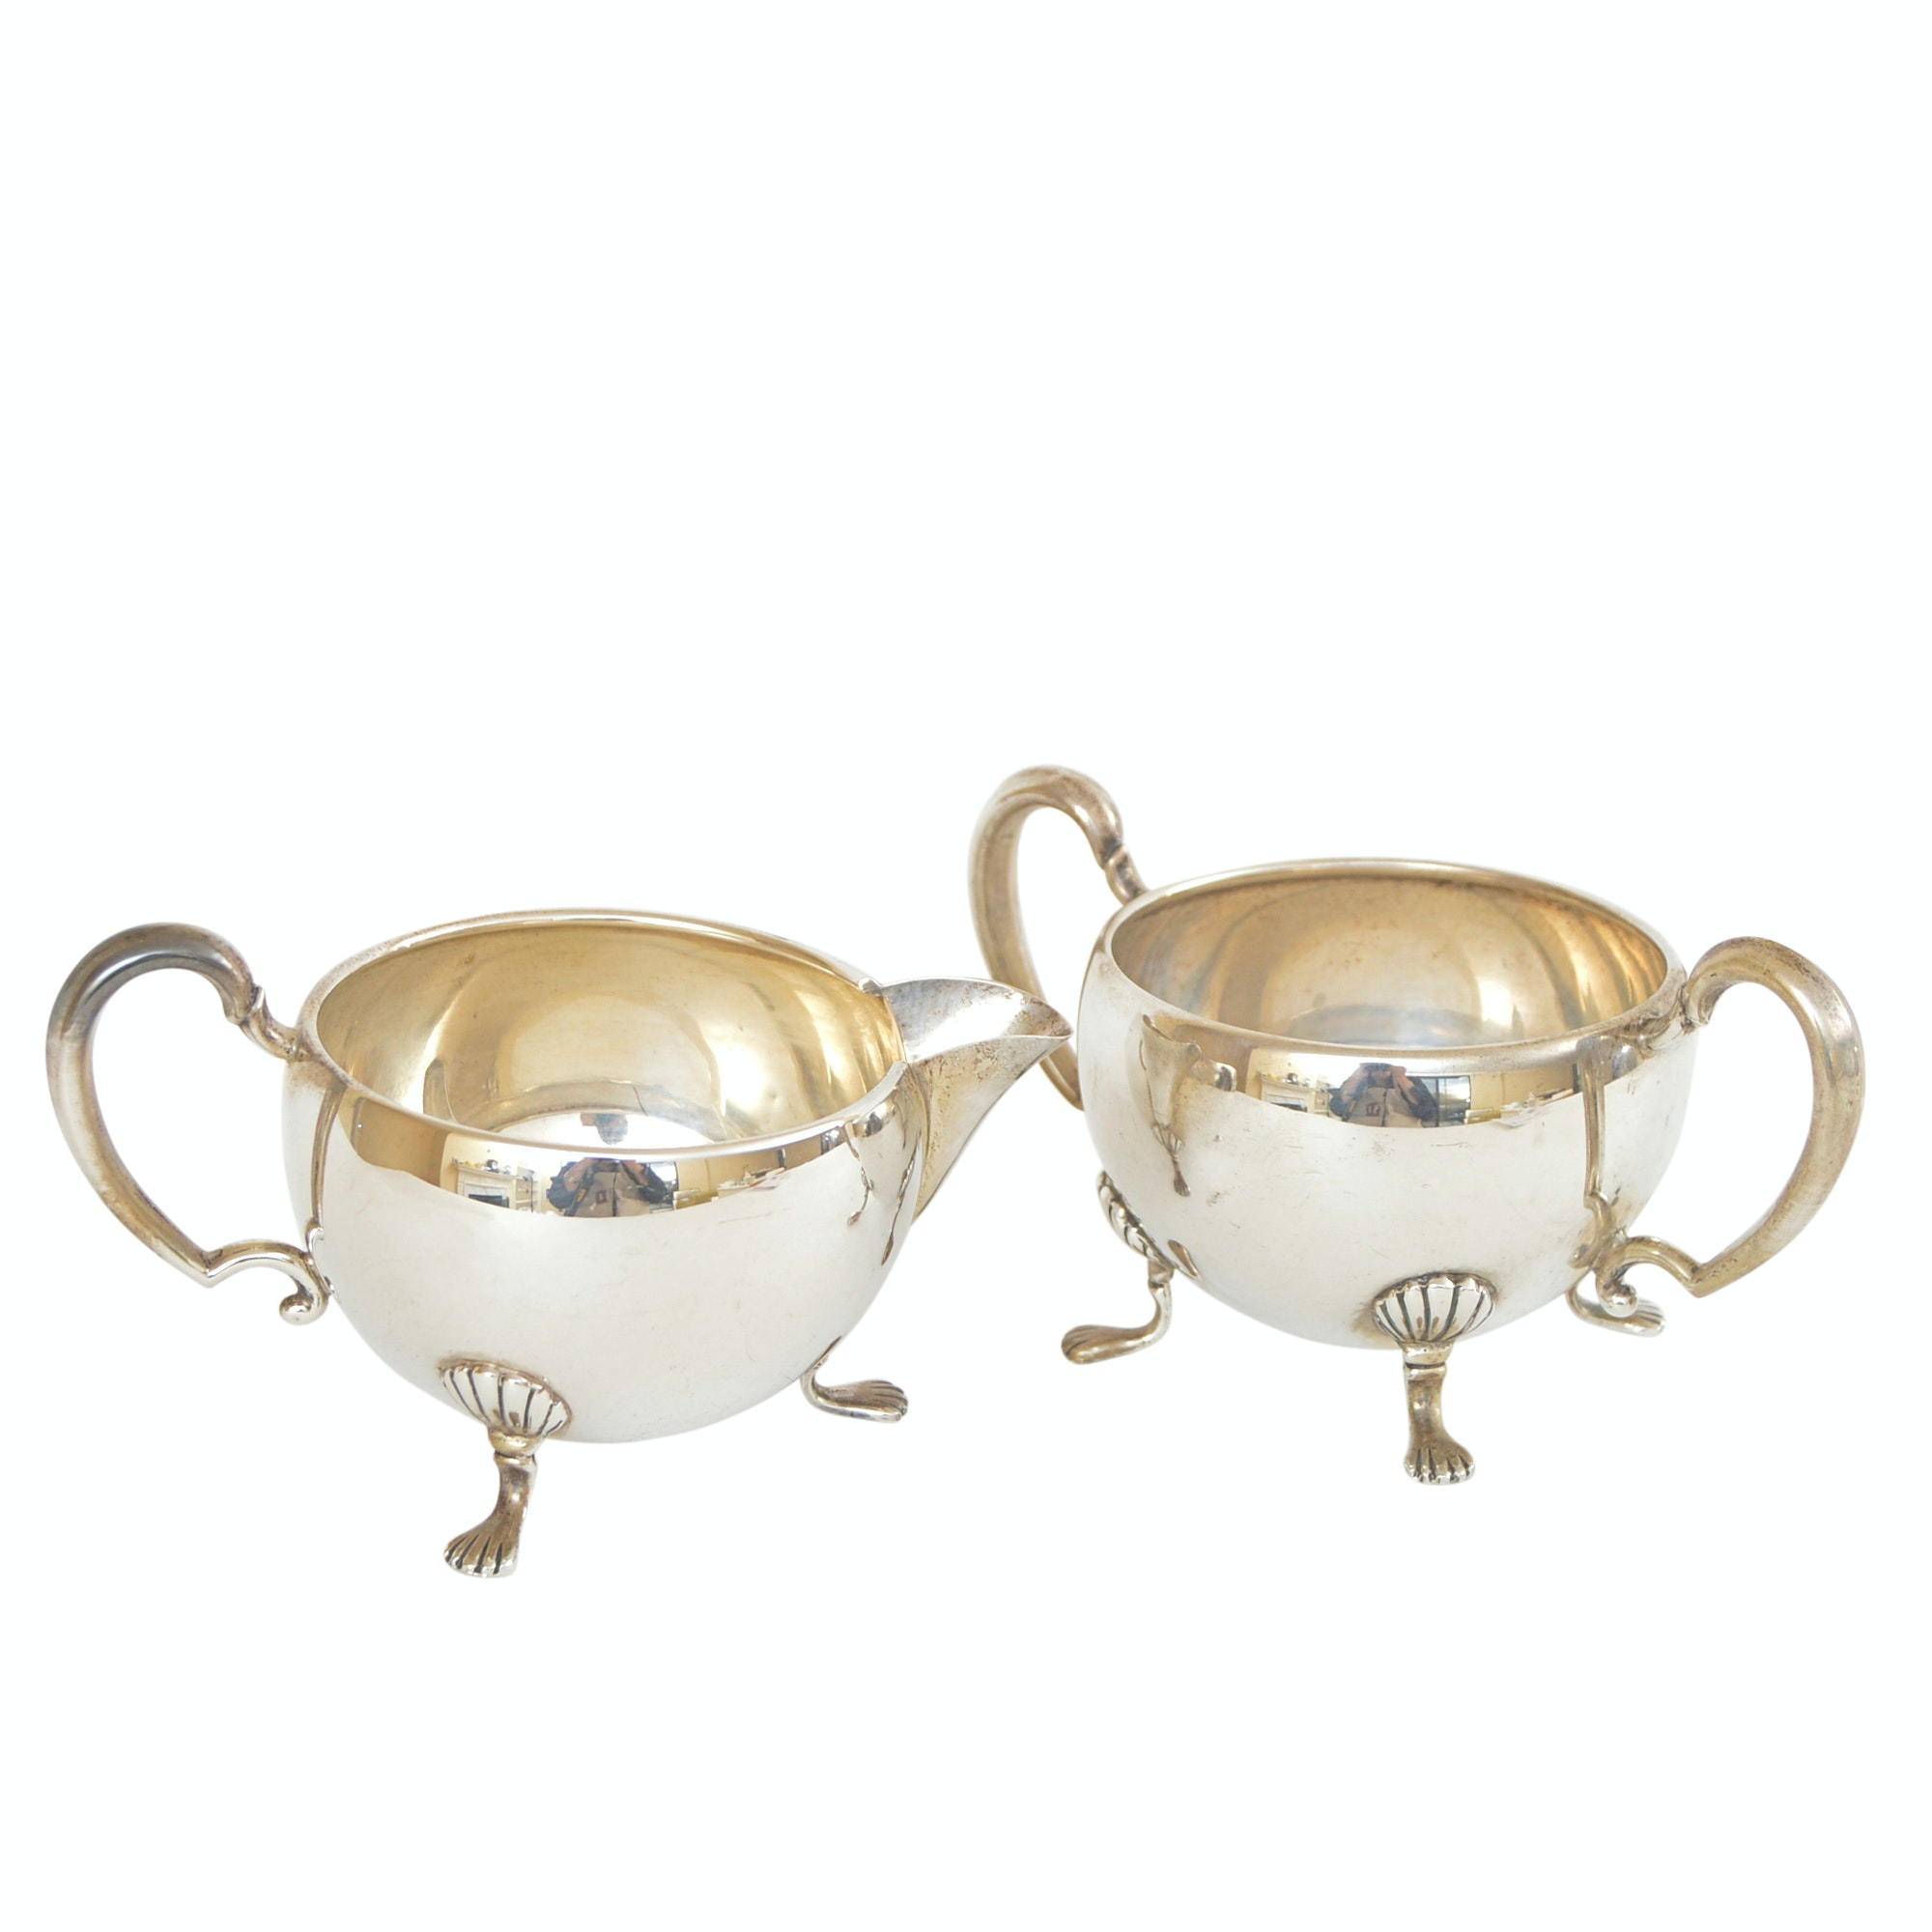 Hunt Silver Co. George II Style Sterling Silver Creamer and Sugar Bowl